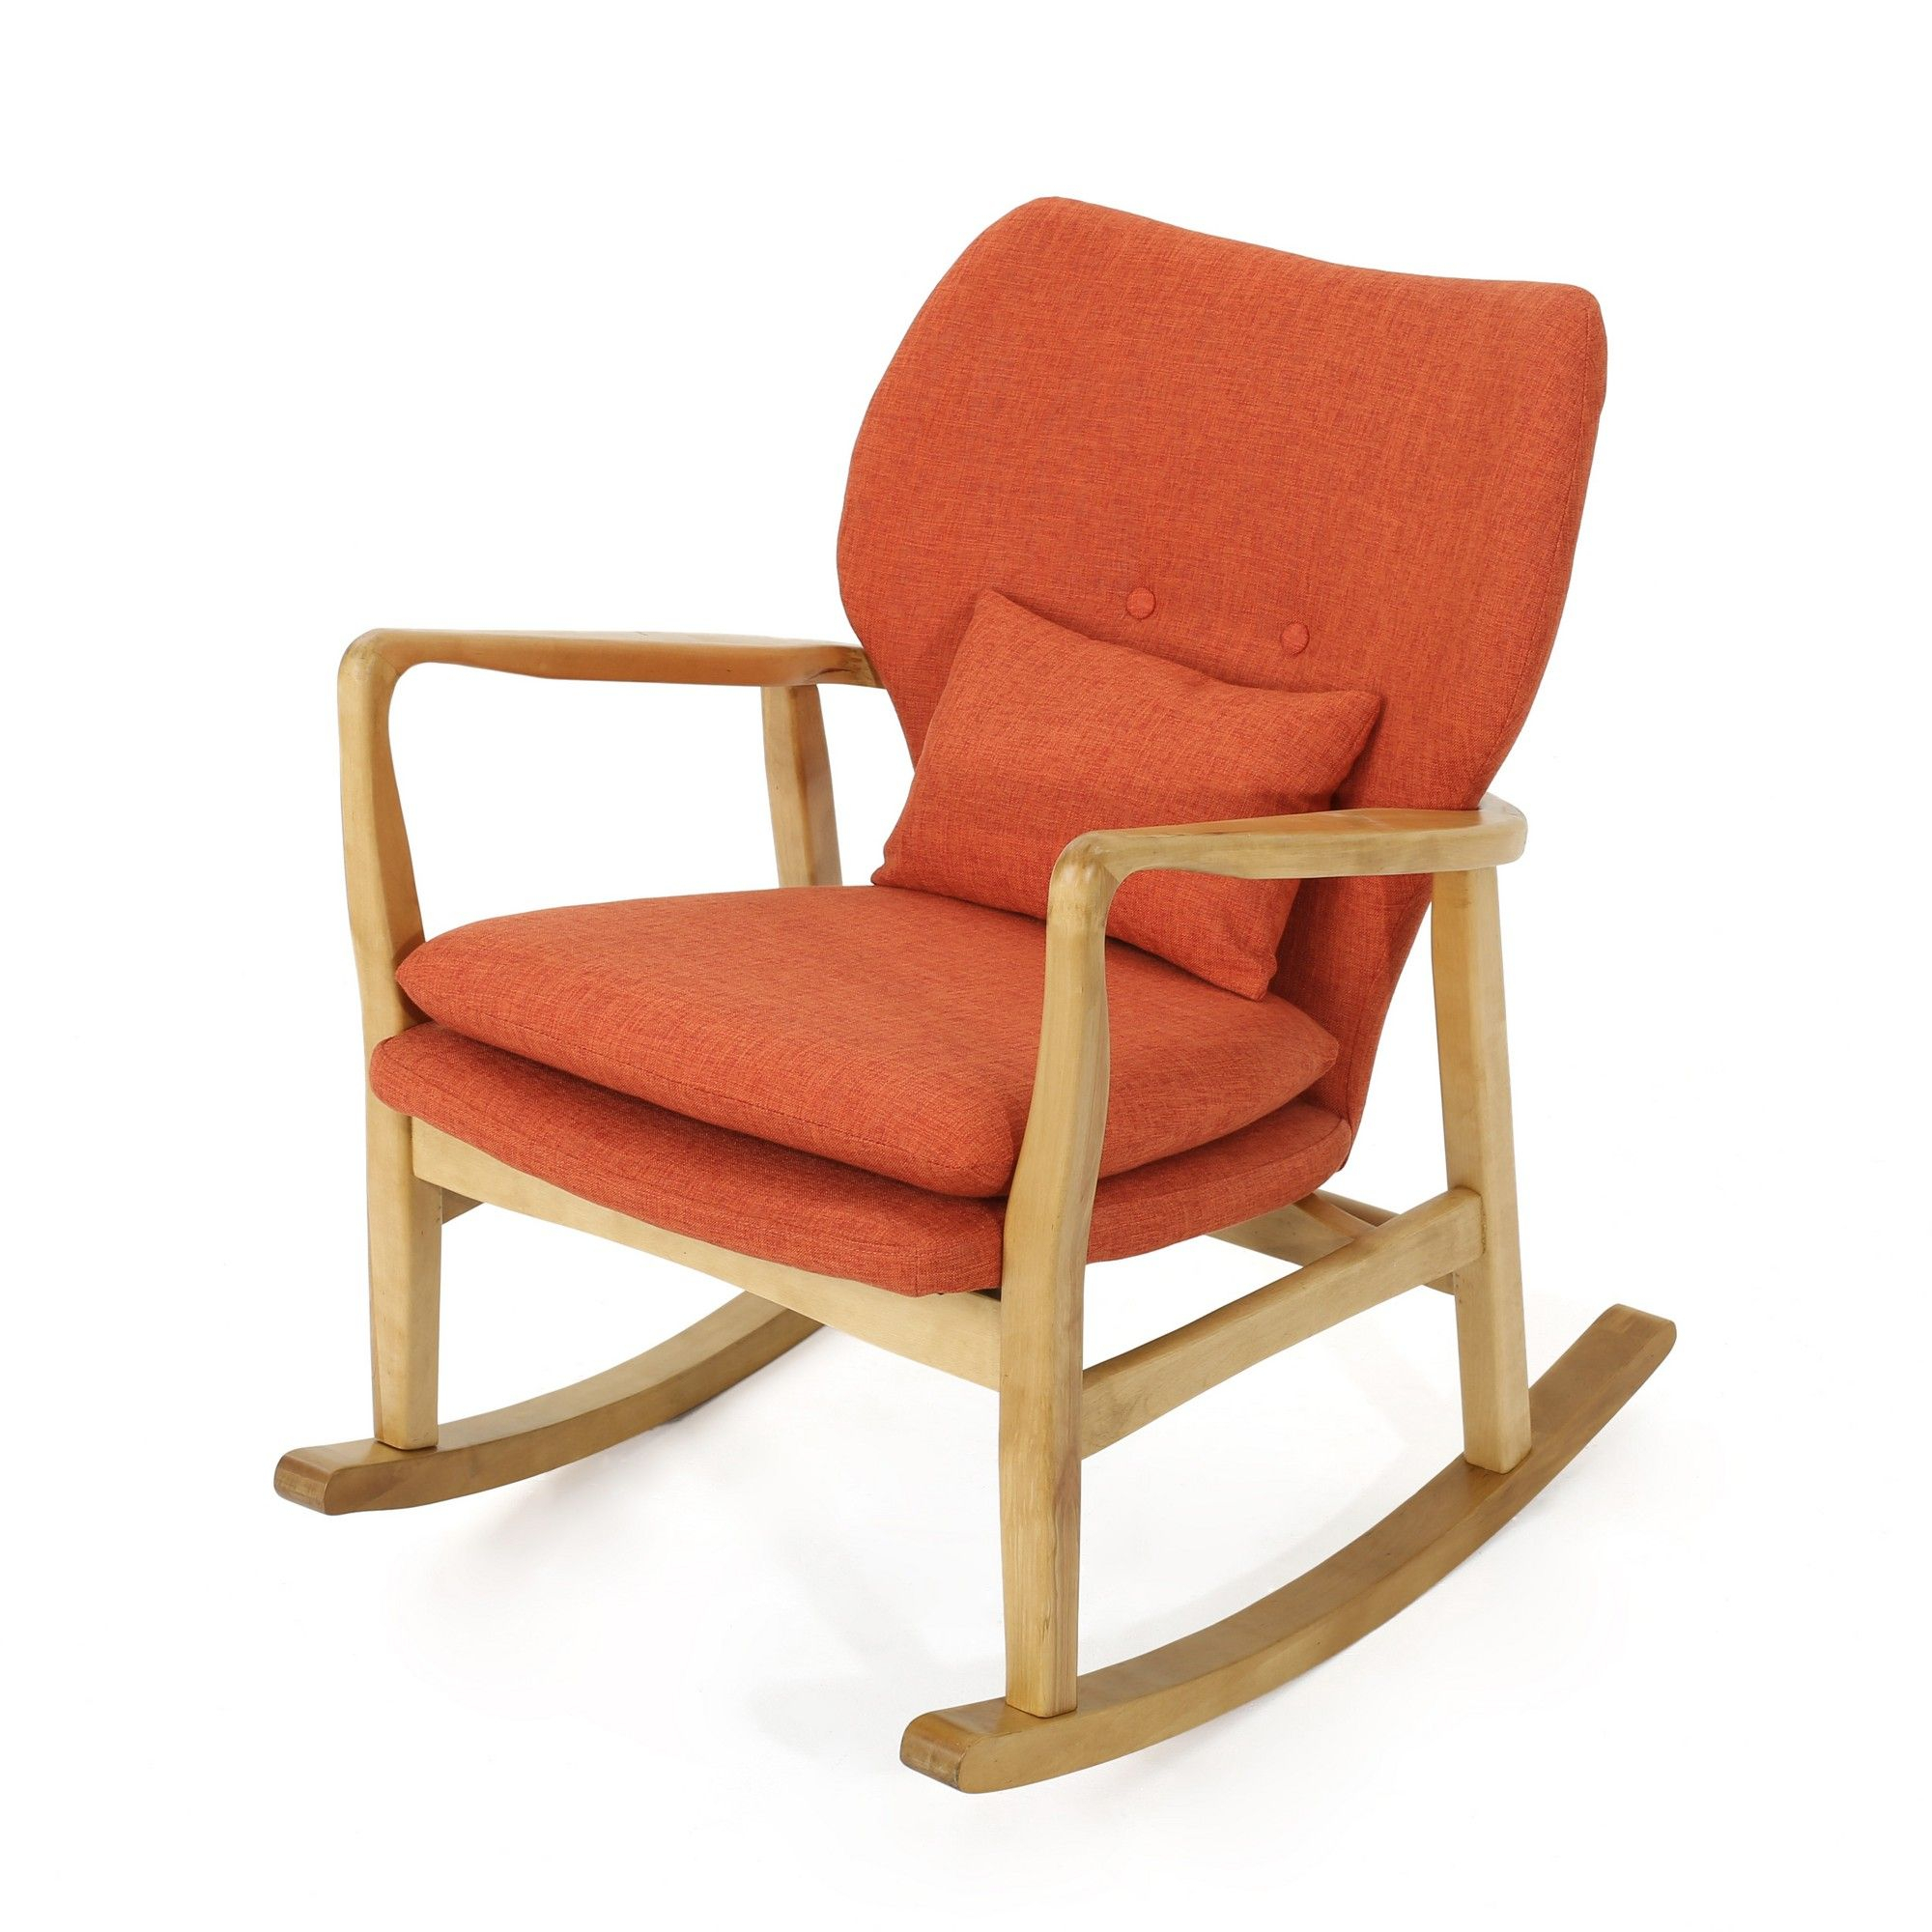 Benny Mid Century Modern Rocking Chair Muted Orange Throughout Mid Century Birch Rocking Chairs (#2 of 20)